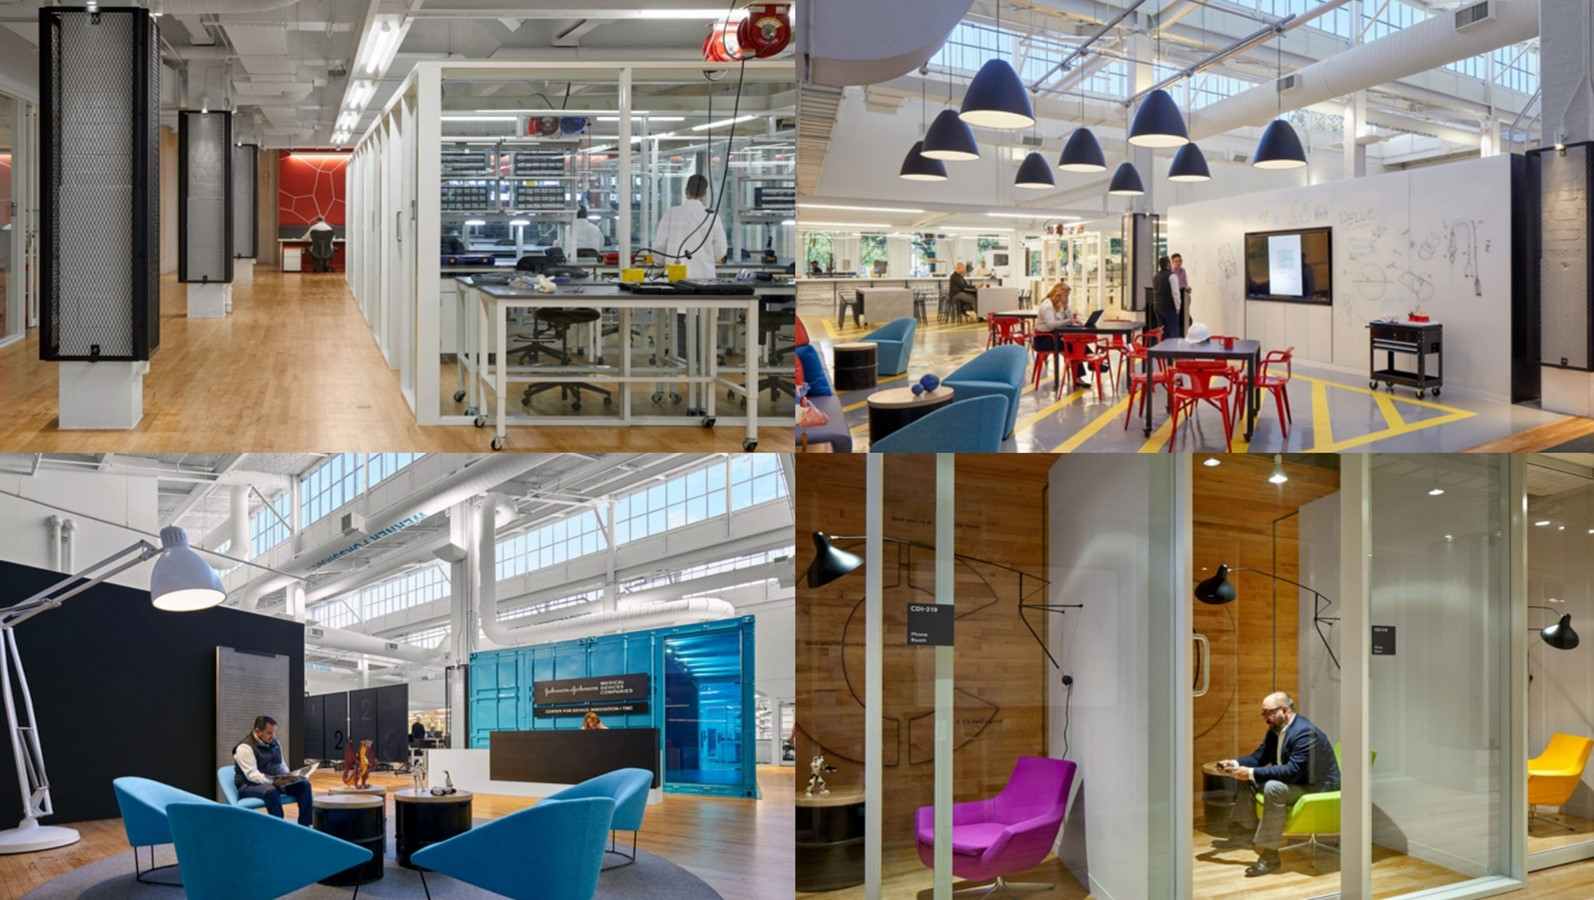 Gensler- 15 Iconic Healthcare Projects - Sheet11